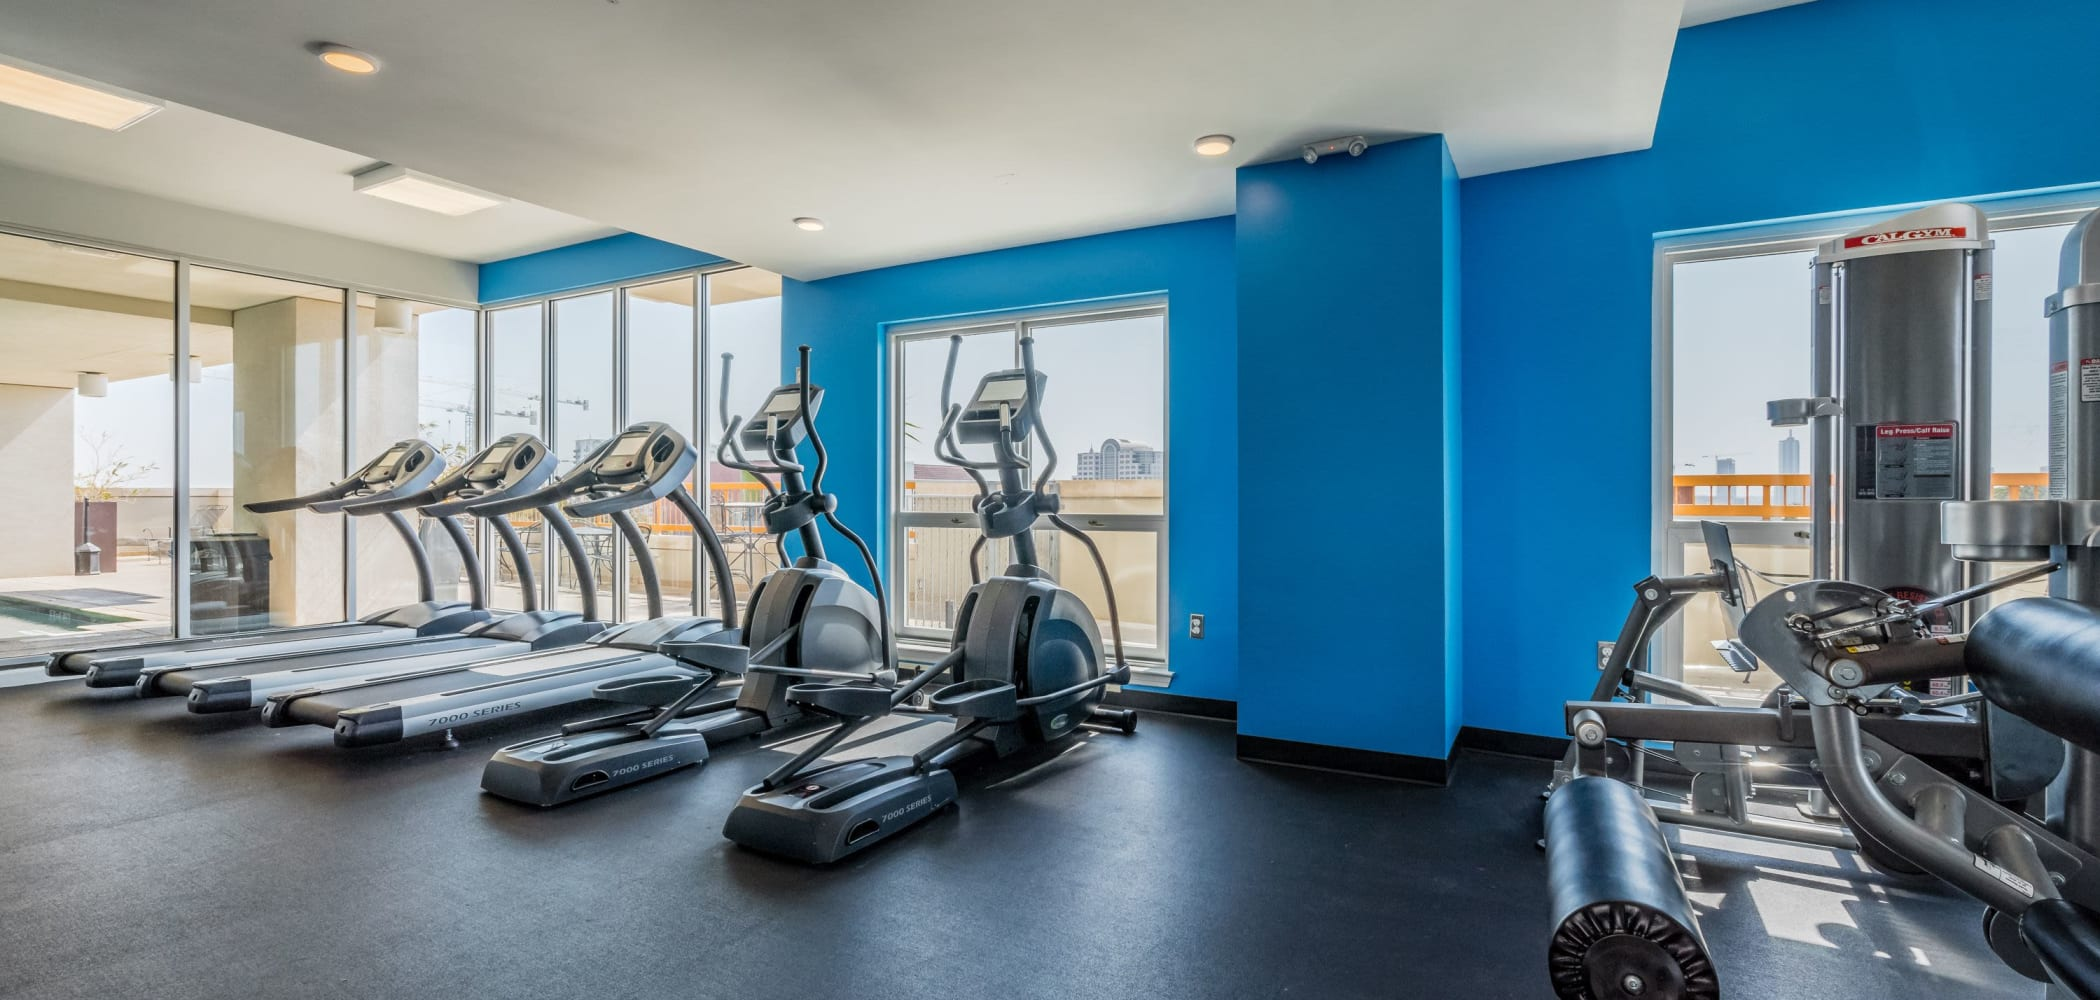 Fully equipped fitness center at 21 Rio in Austin, Texas